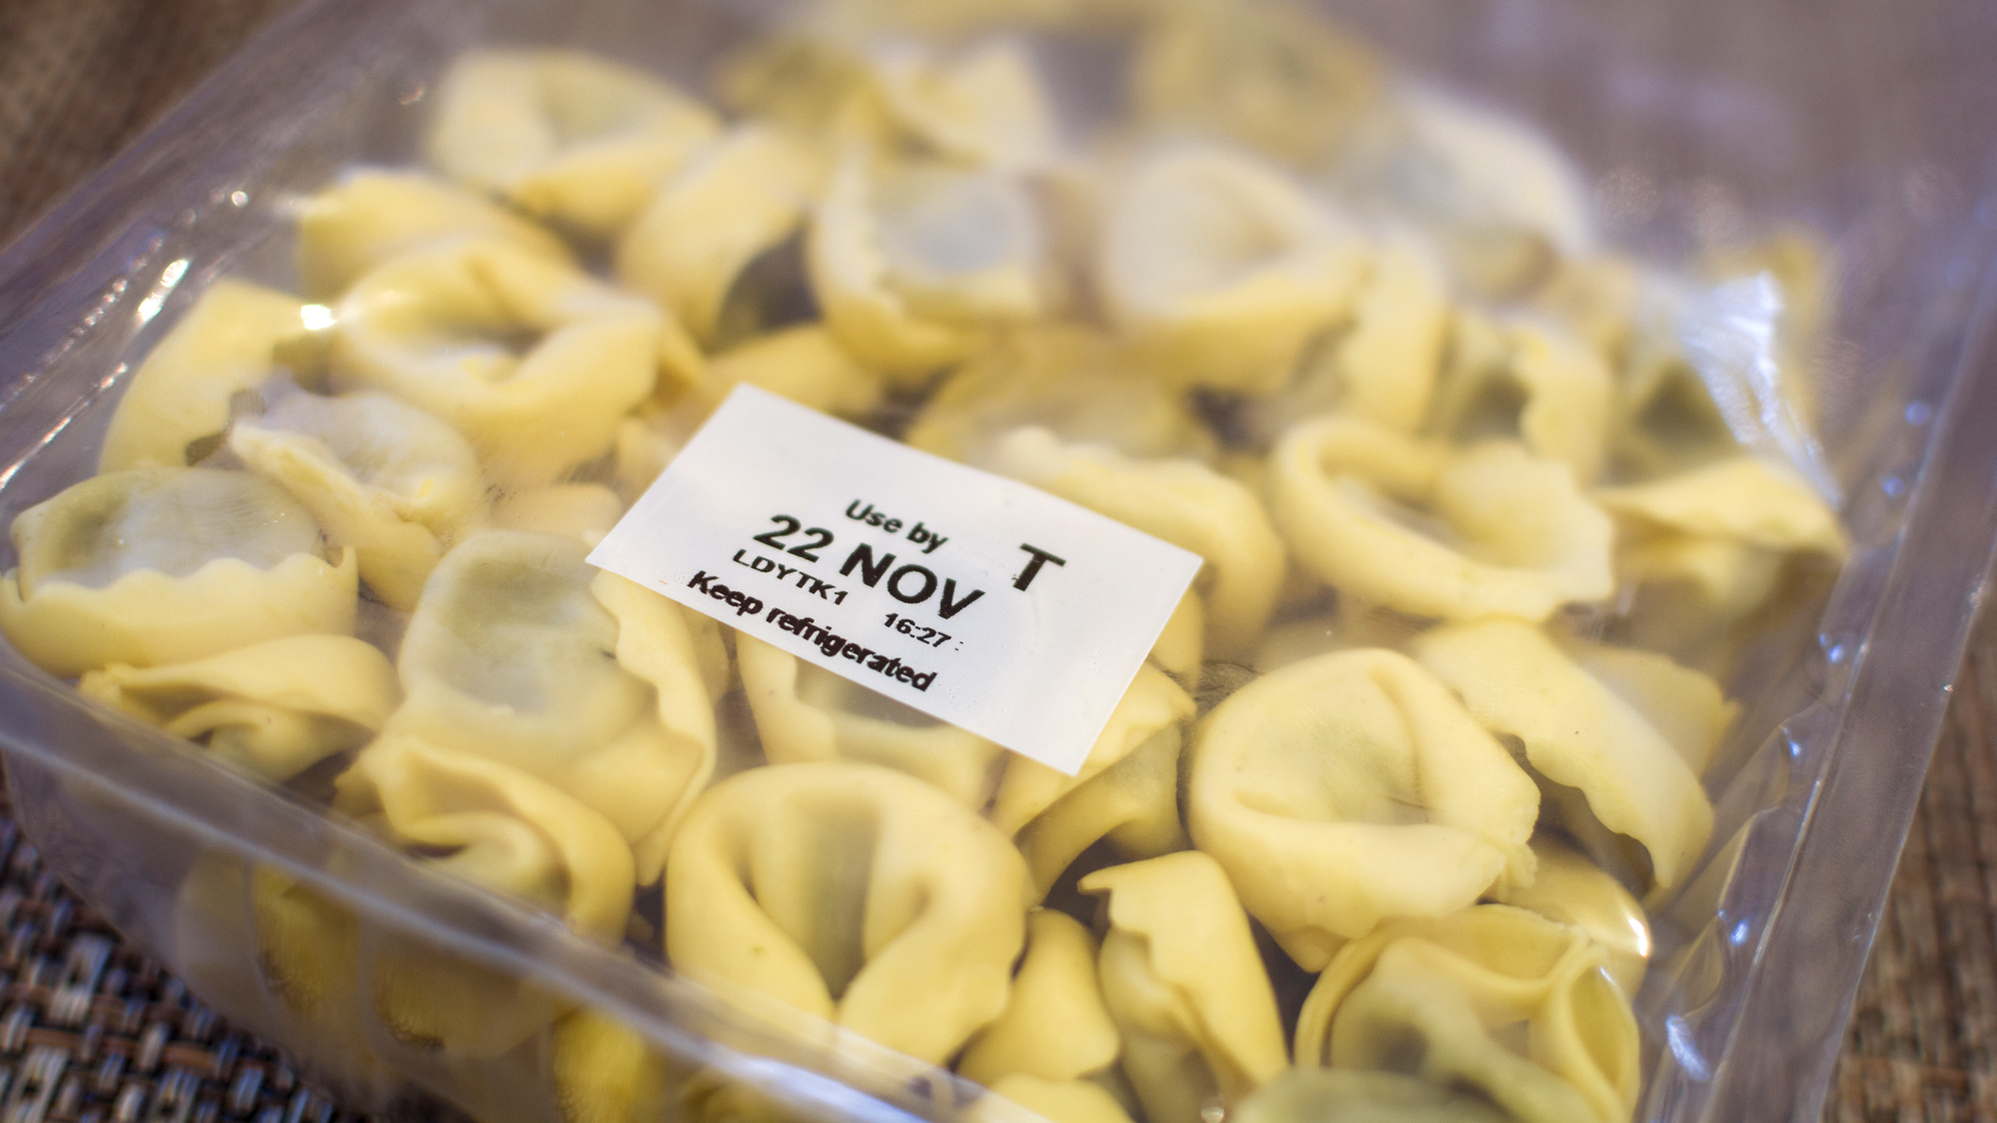 Corporate giants agree to streamline food date labels by 2020